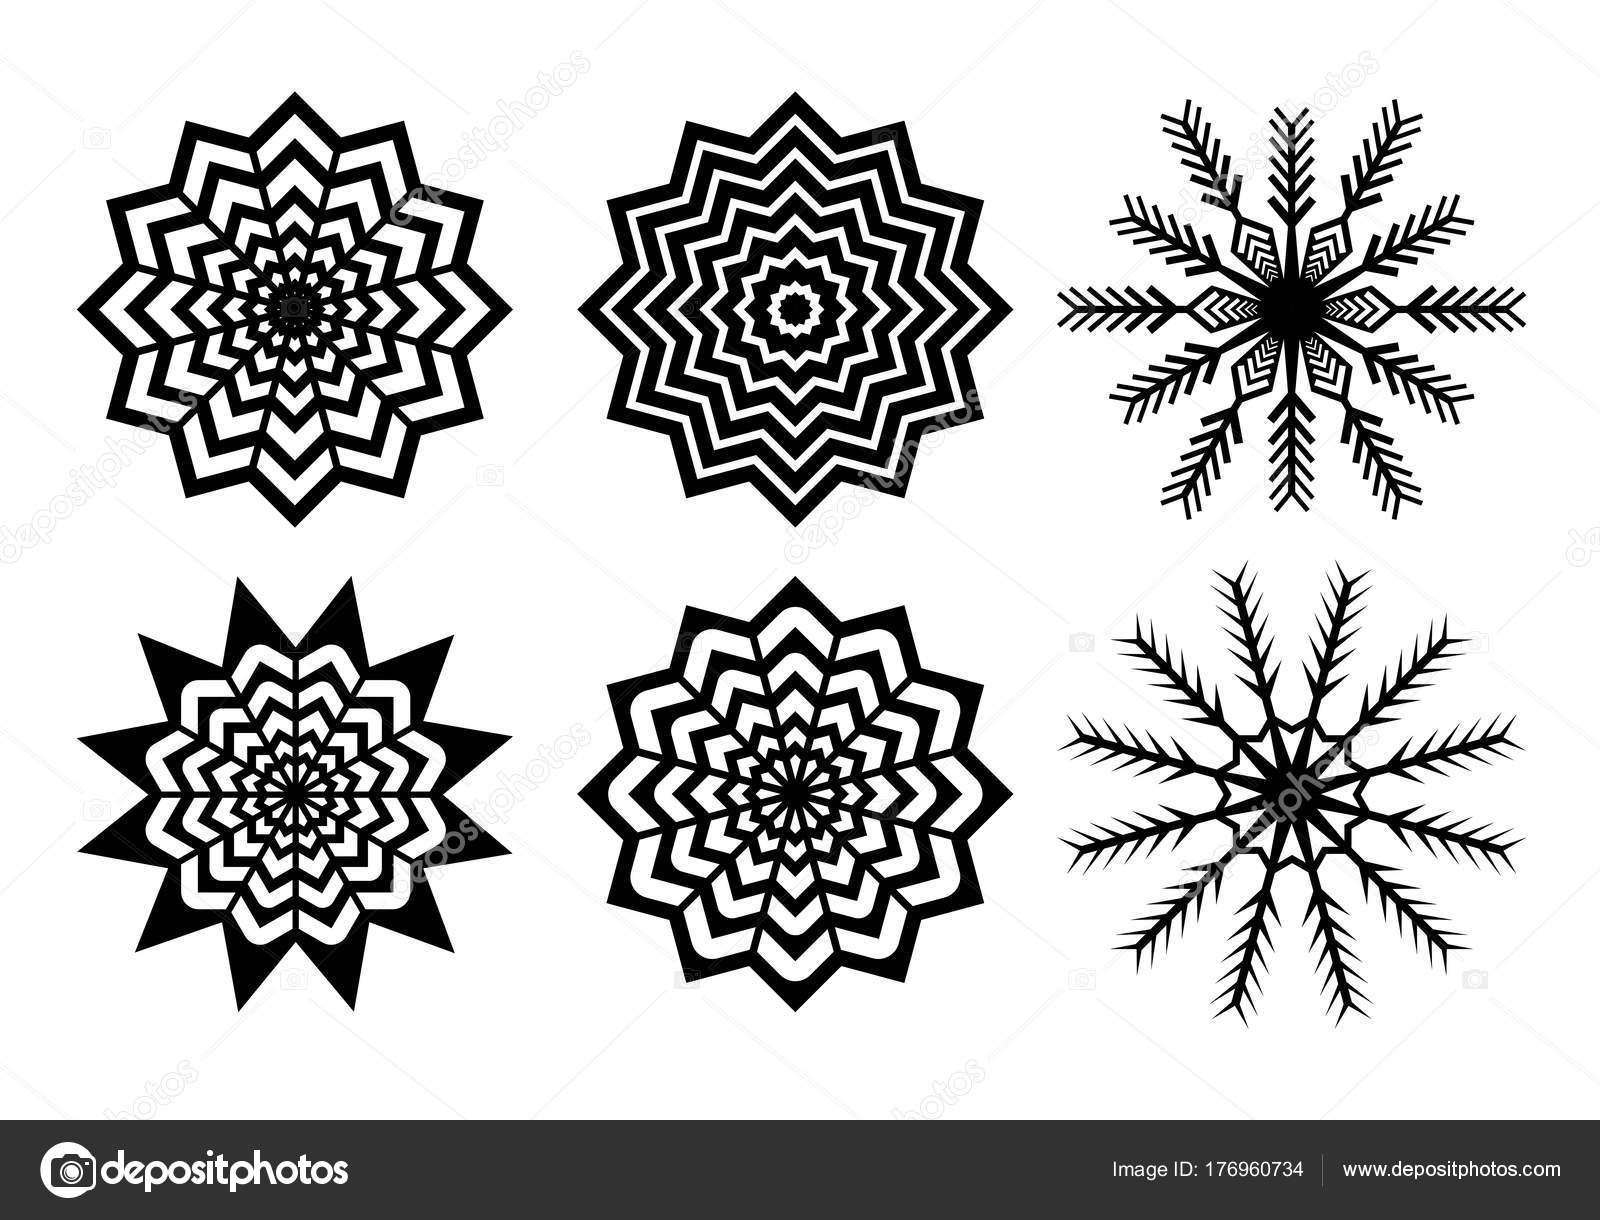 Black Paper Cuted Christmas Snowflakes Pack Isolated On White